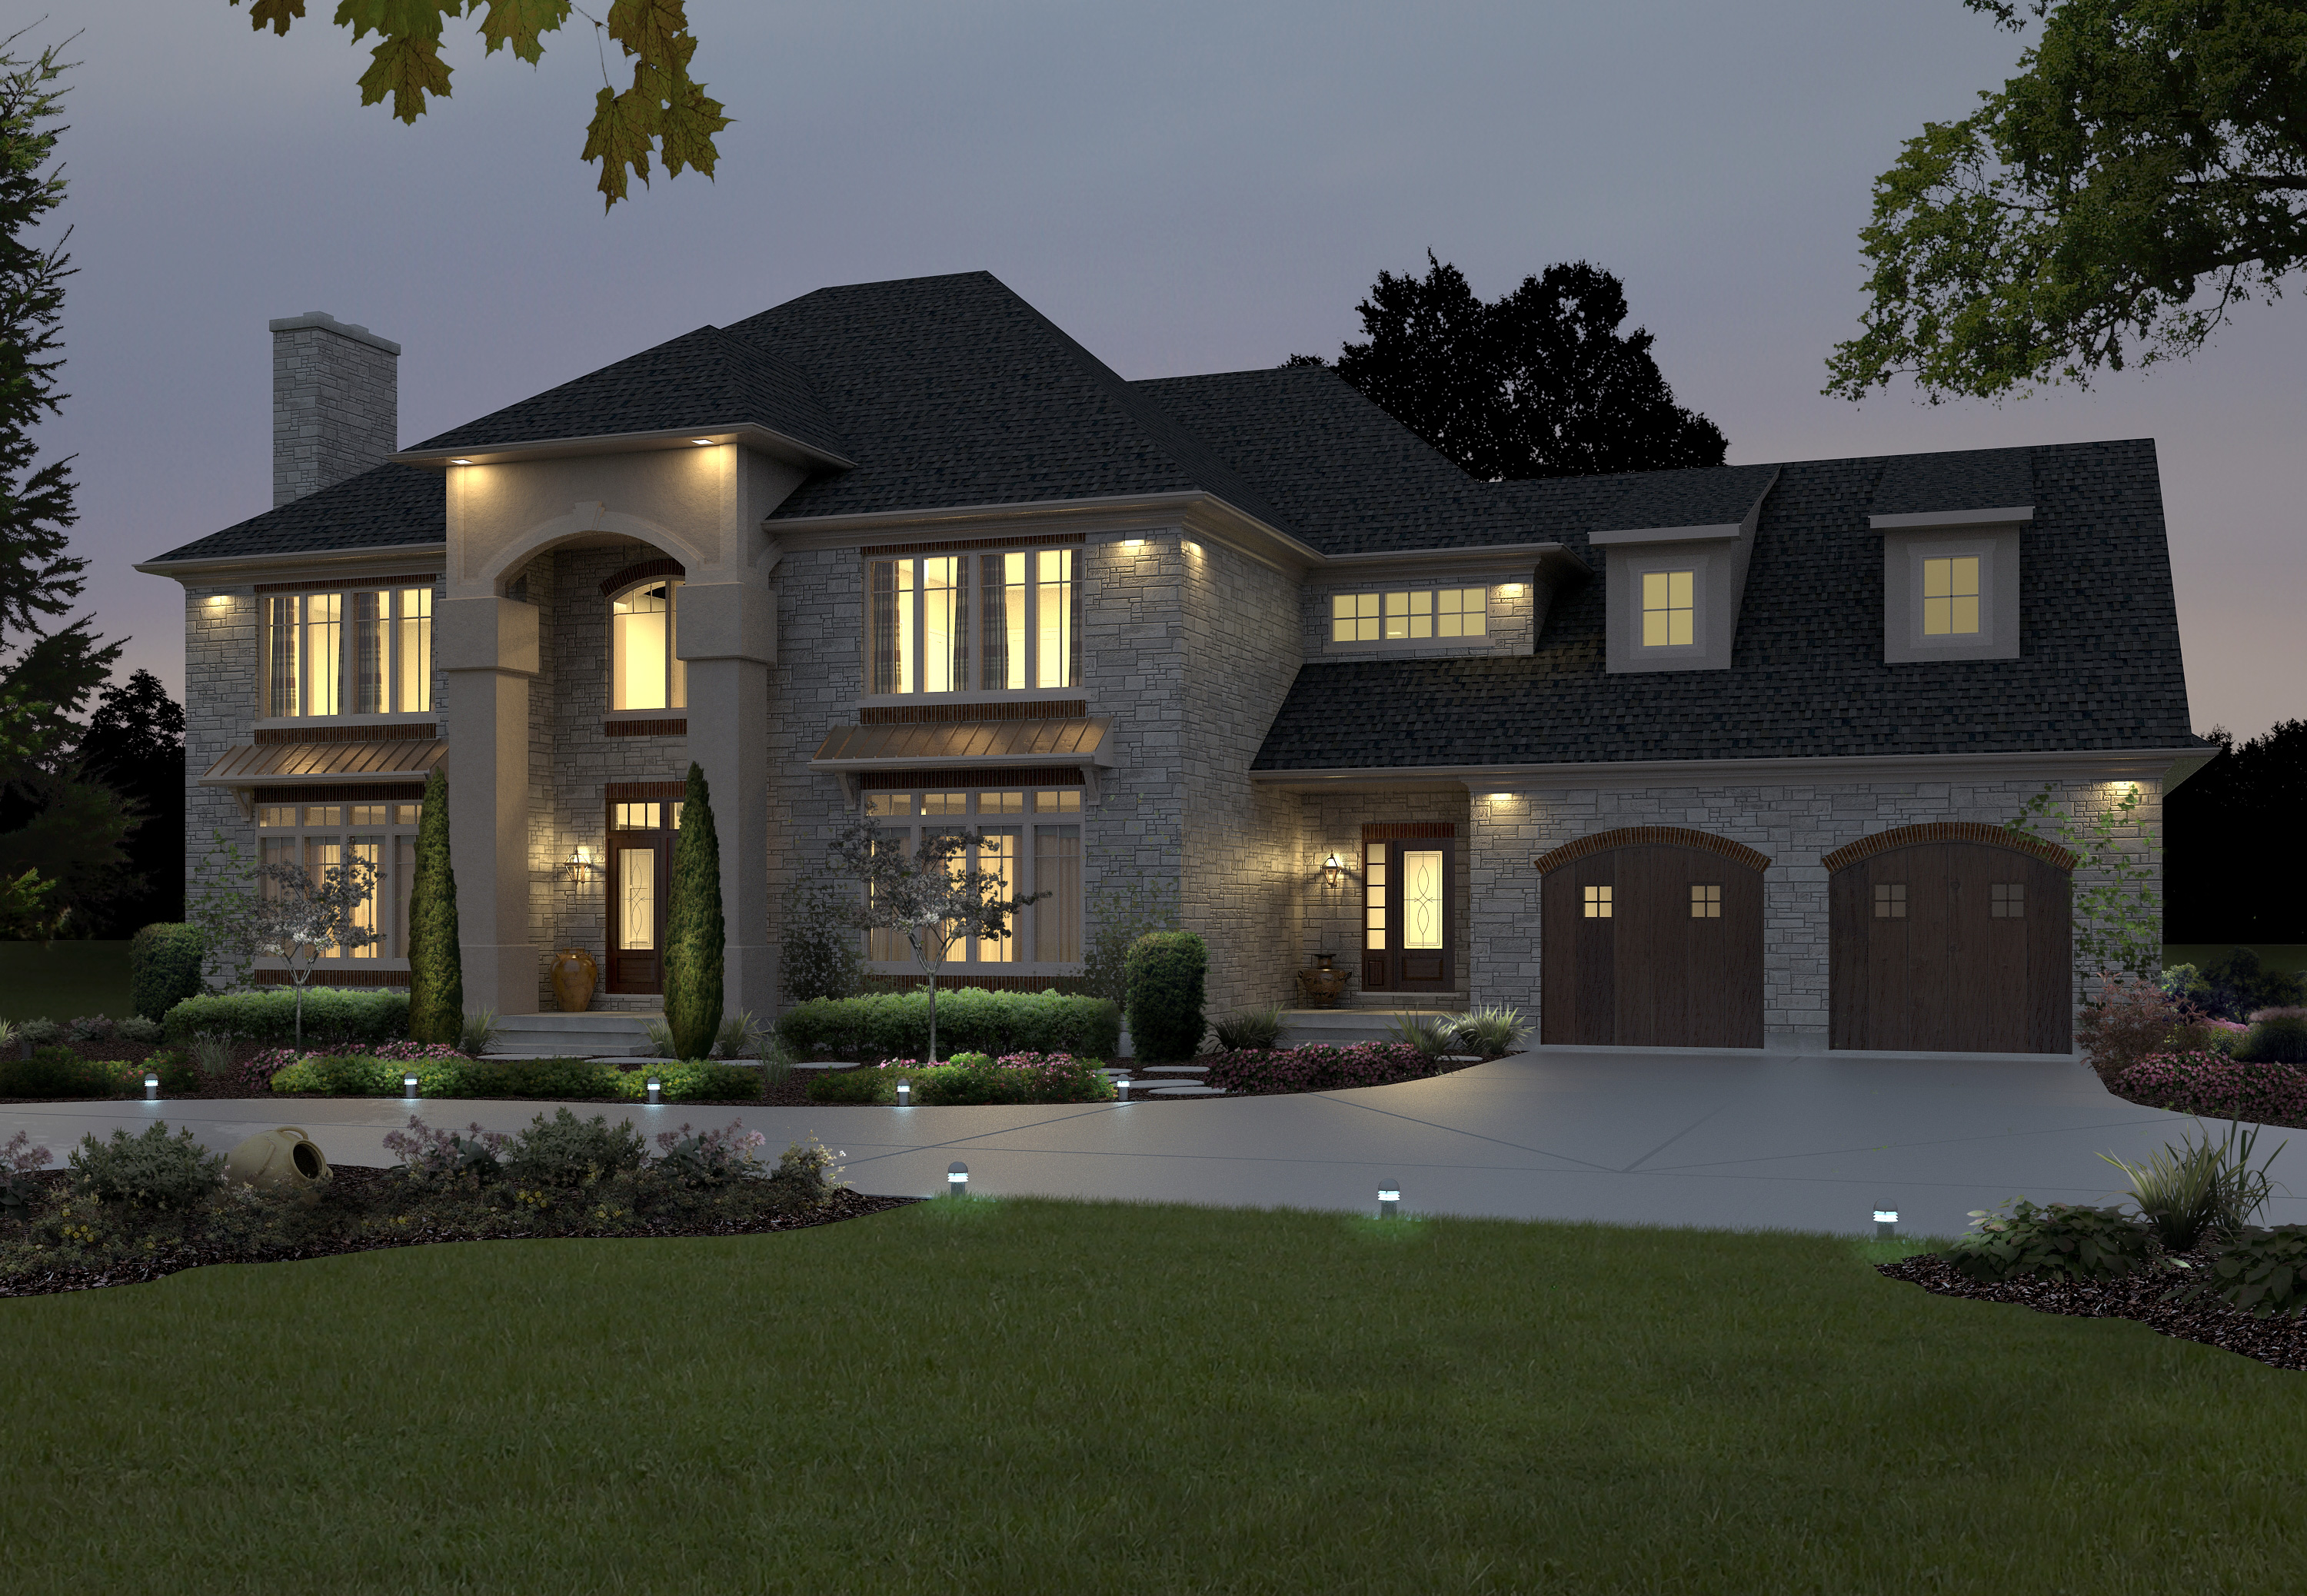 Custom Home Designs House Plans One Floor Living With Modern Americas Best